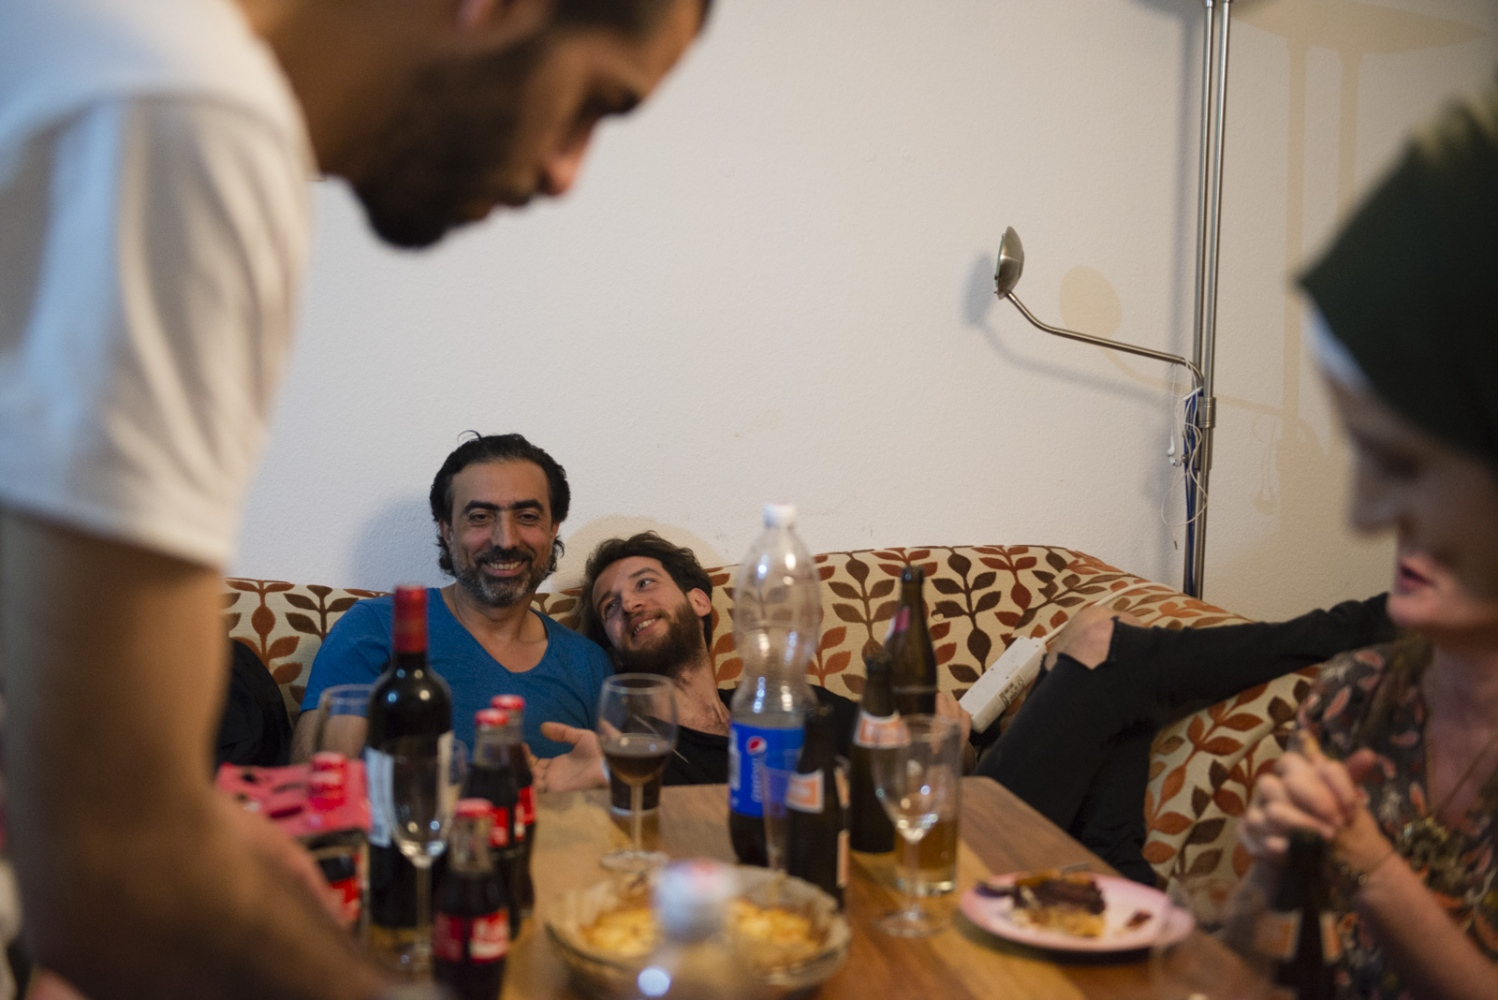 BERLIN| GERMANY | 2016-06-10|Syrian and German friends have come together to celebrate Alaa's 26th birthday at his house over food and homemade cake.